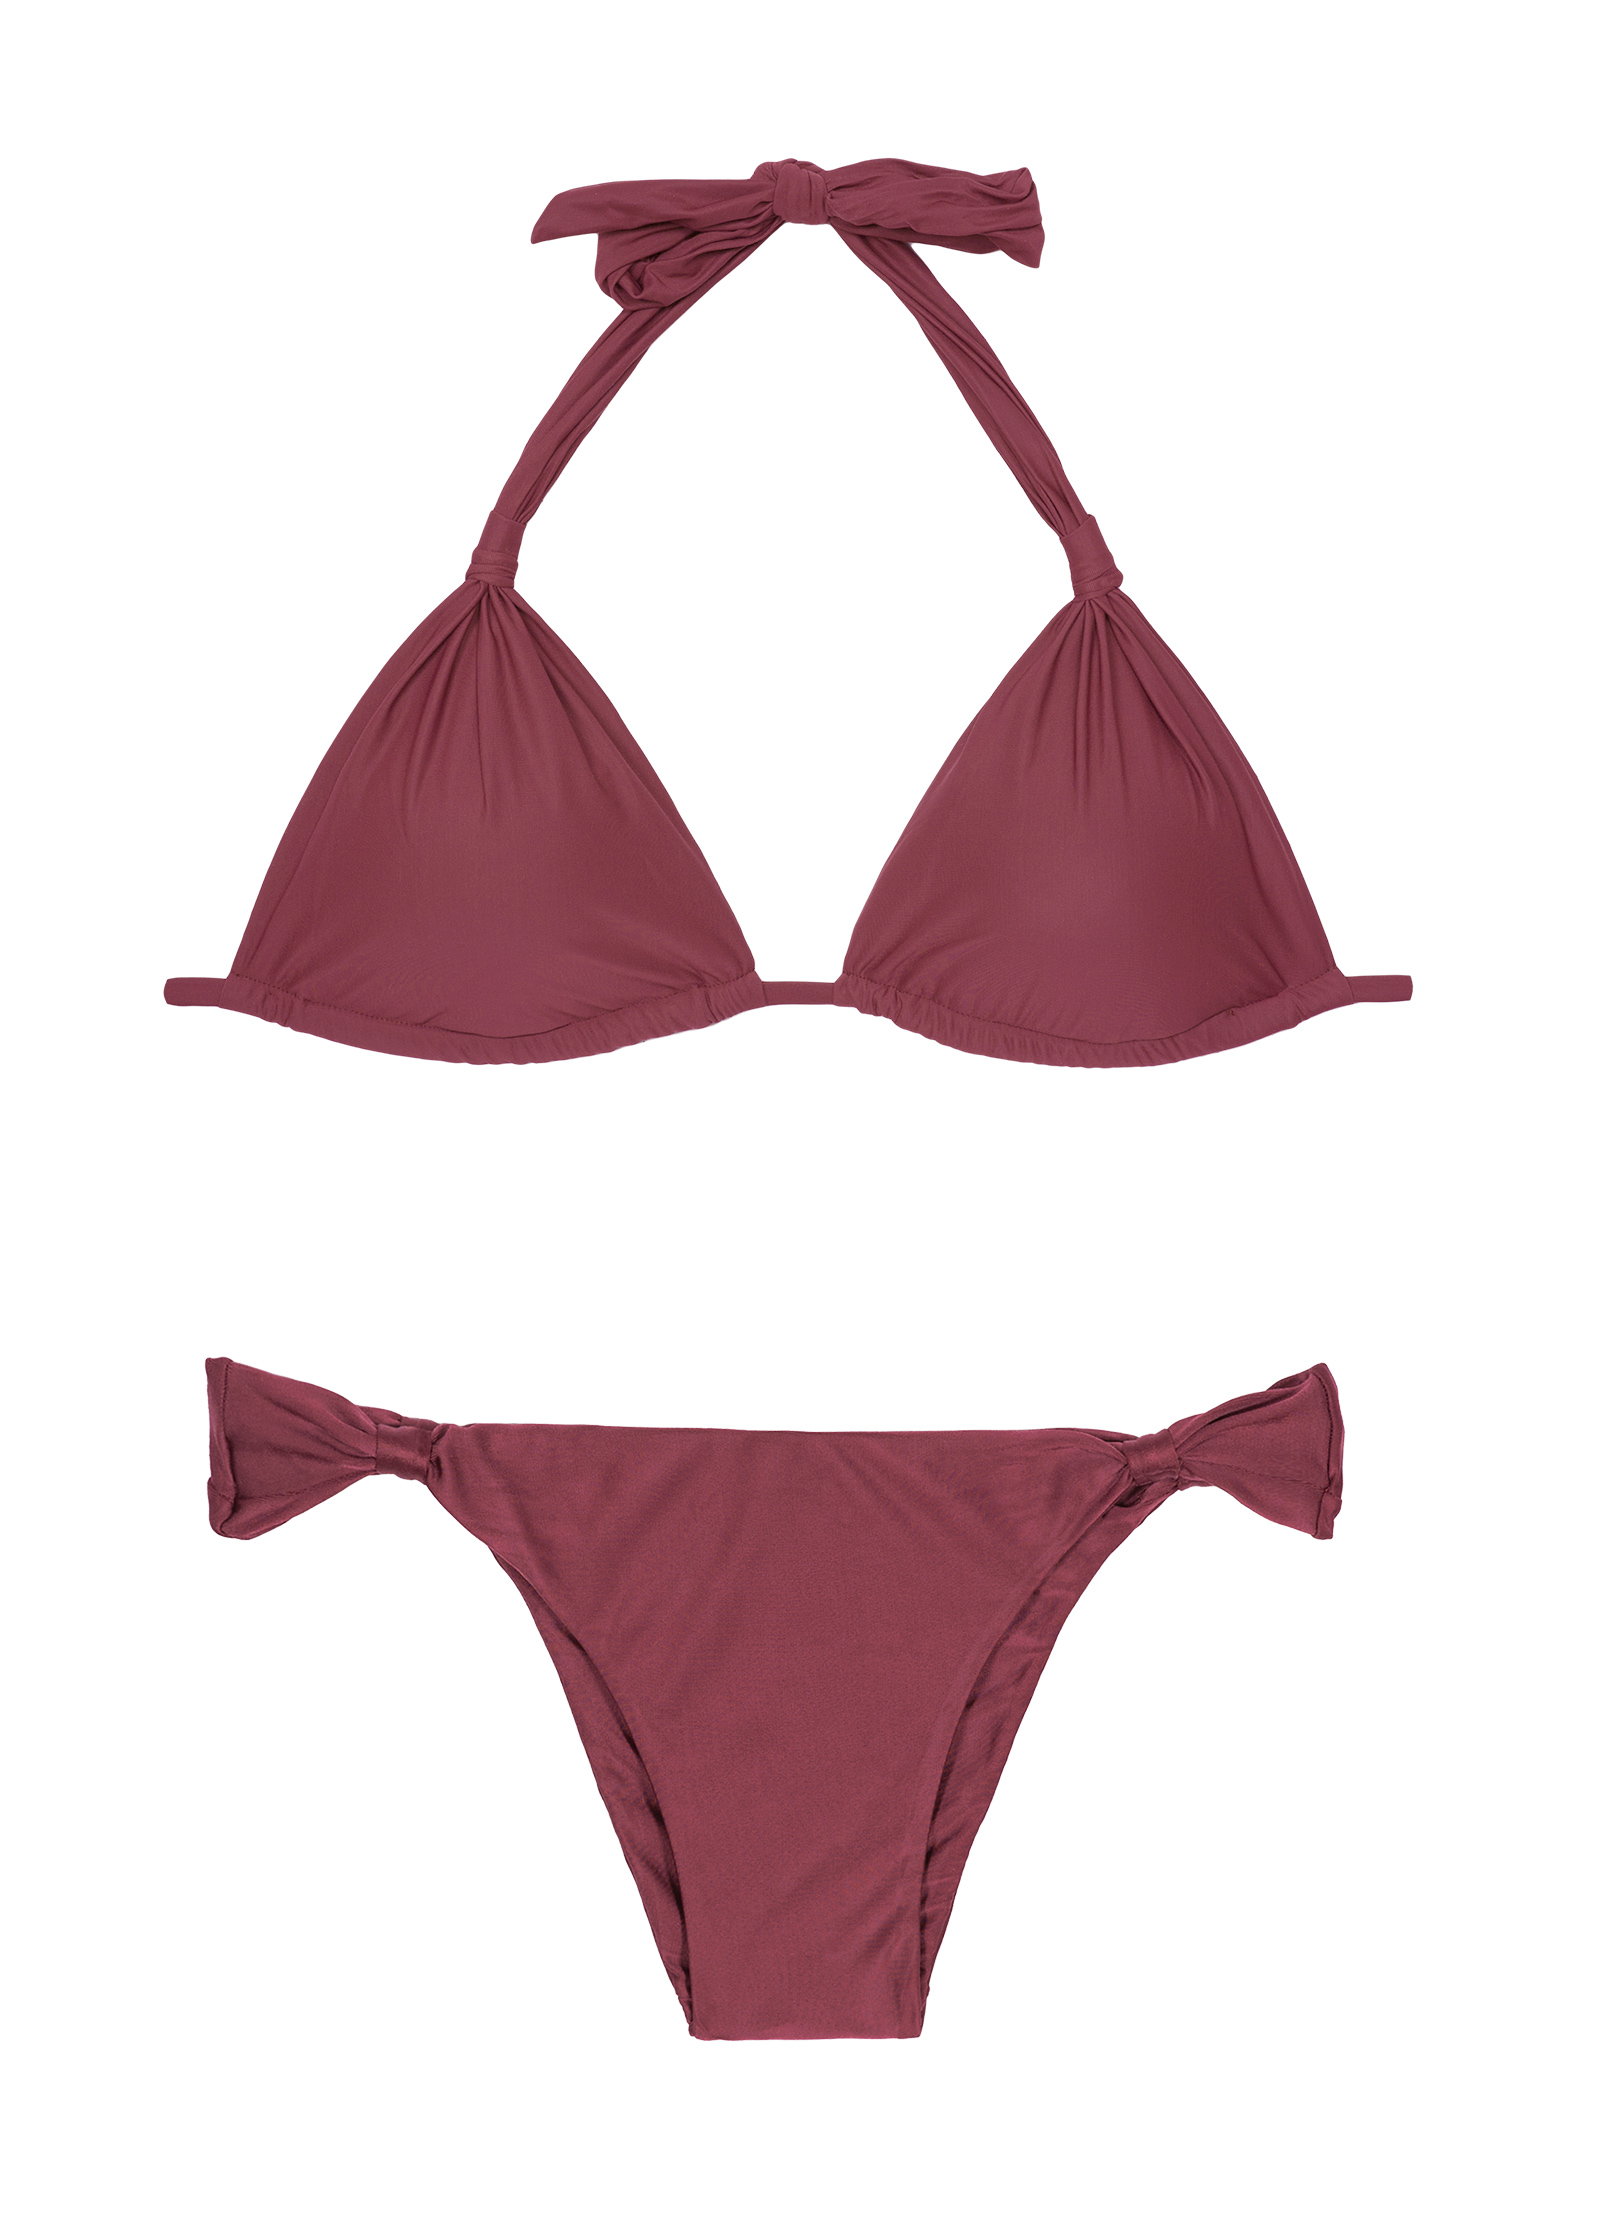 Rib Triangle Bikini Set- $4.99